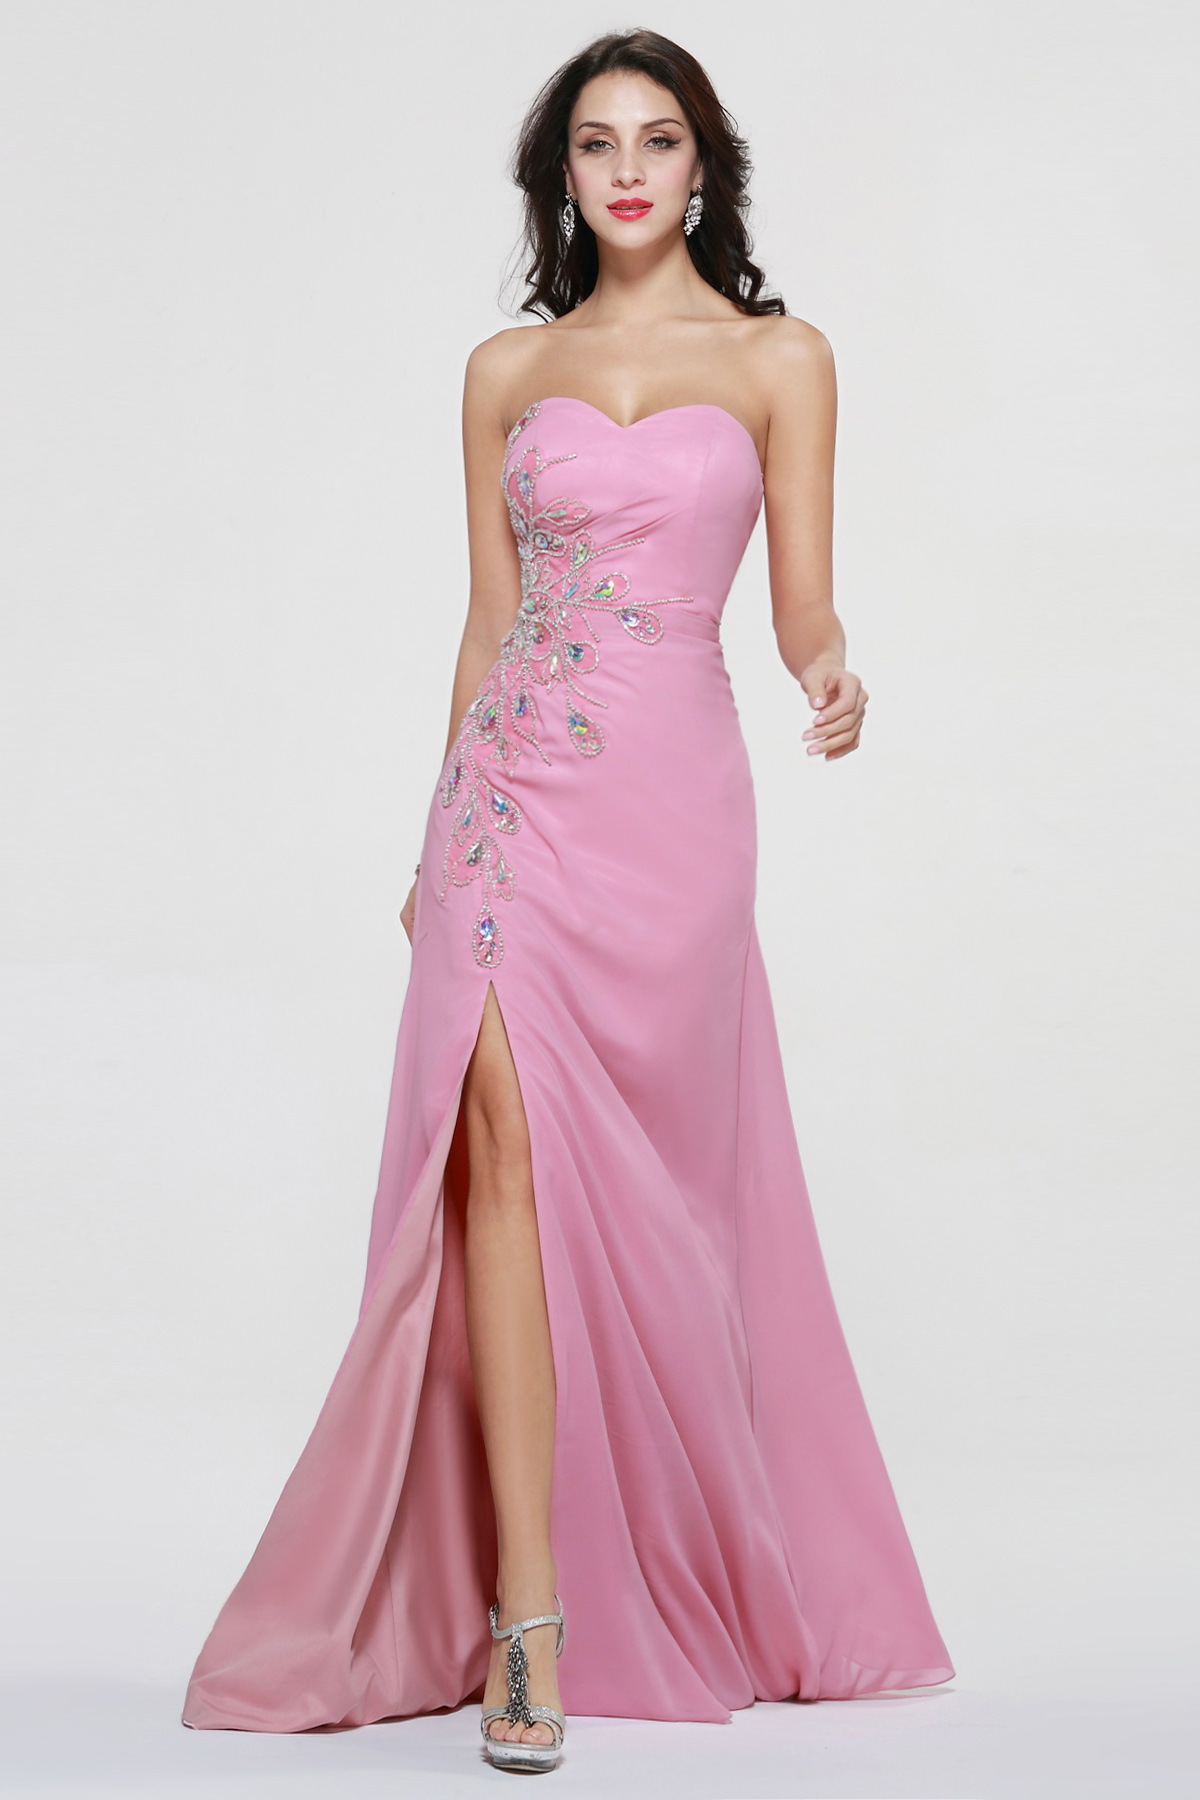 A-line Sweetheart Sweep/Brush Train Chiffon Prom Dress